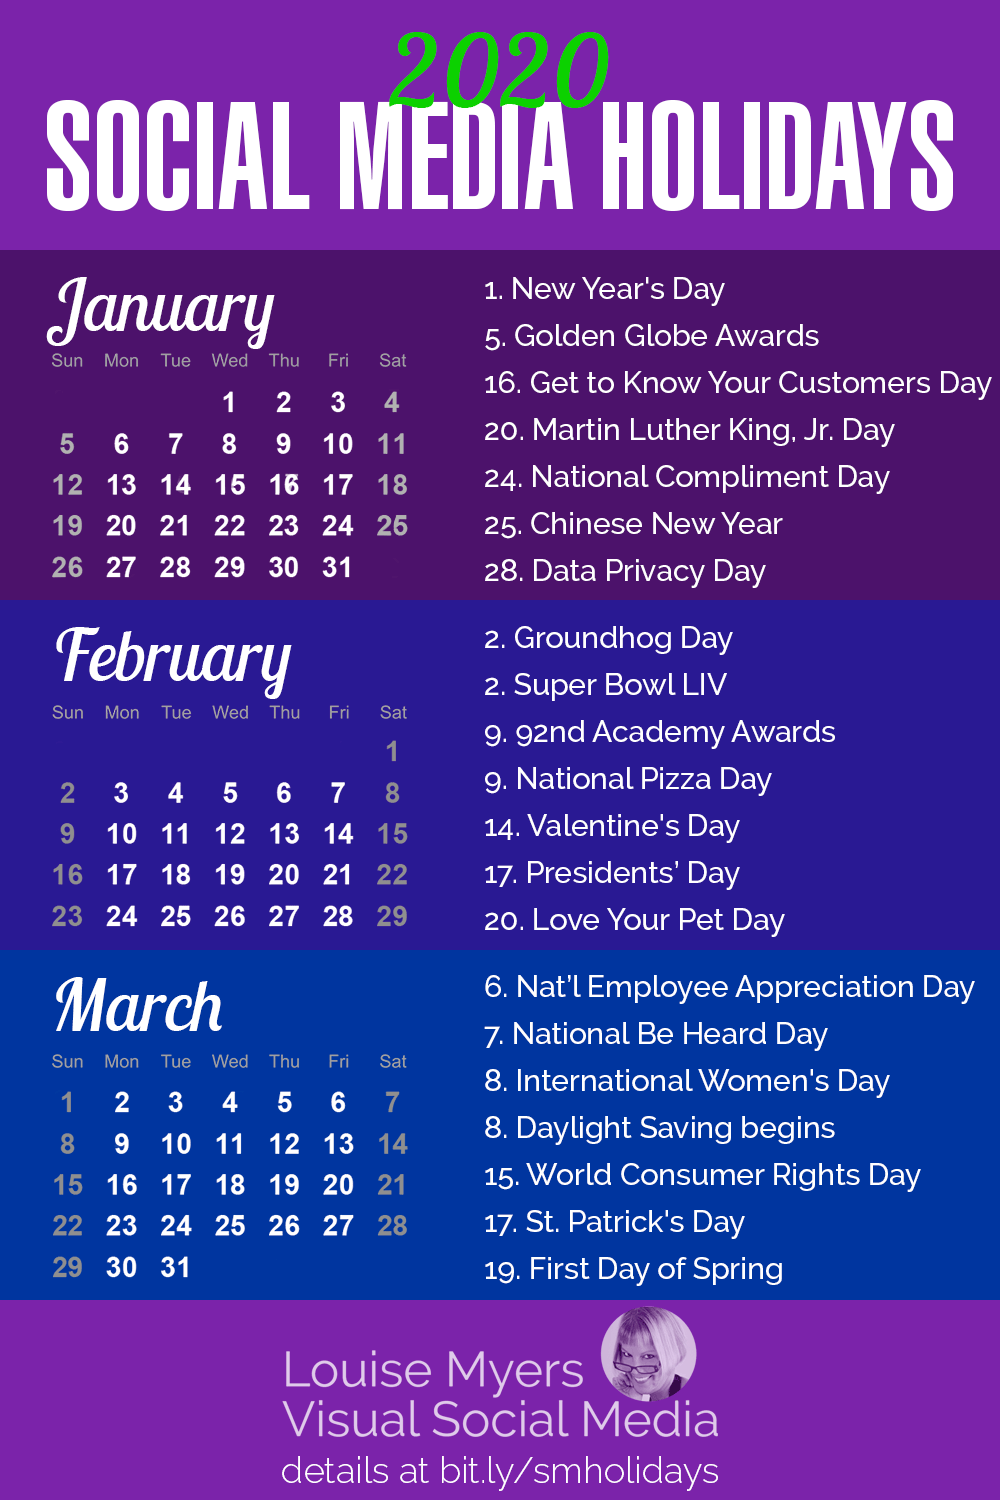 1st Day Of Spring 2020.84 Social Media Holidays You Need In 2020 Indispensable